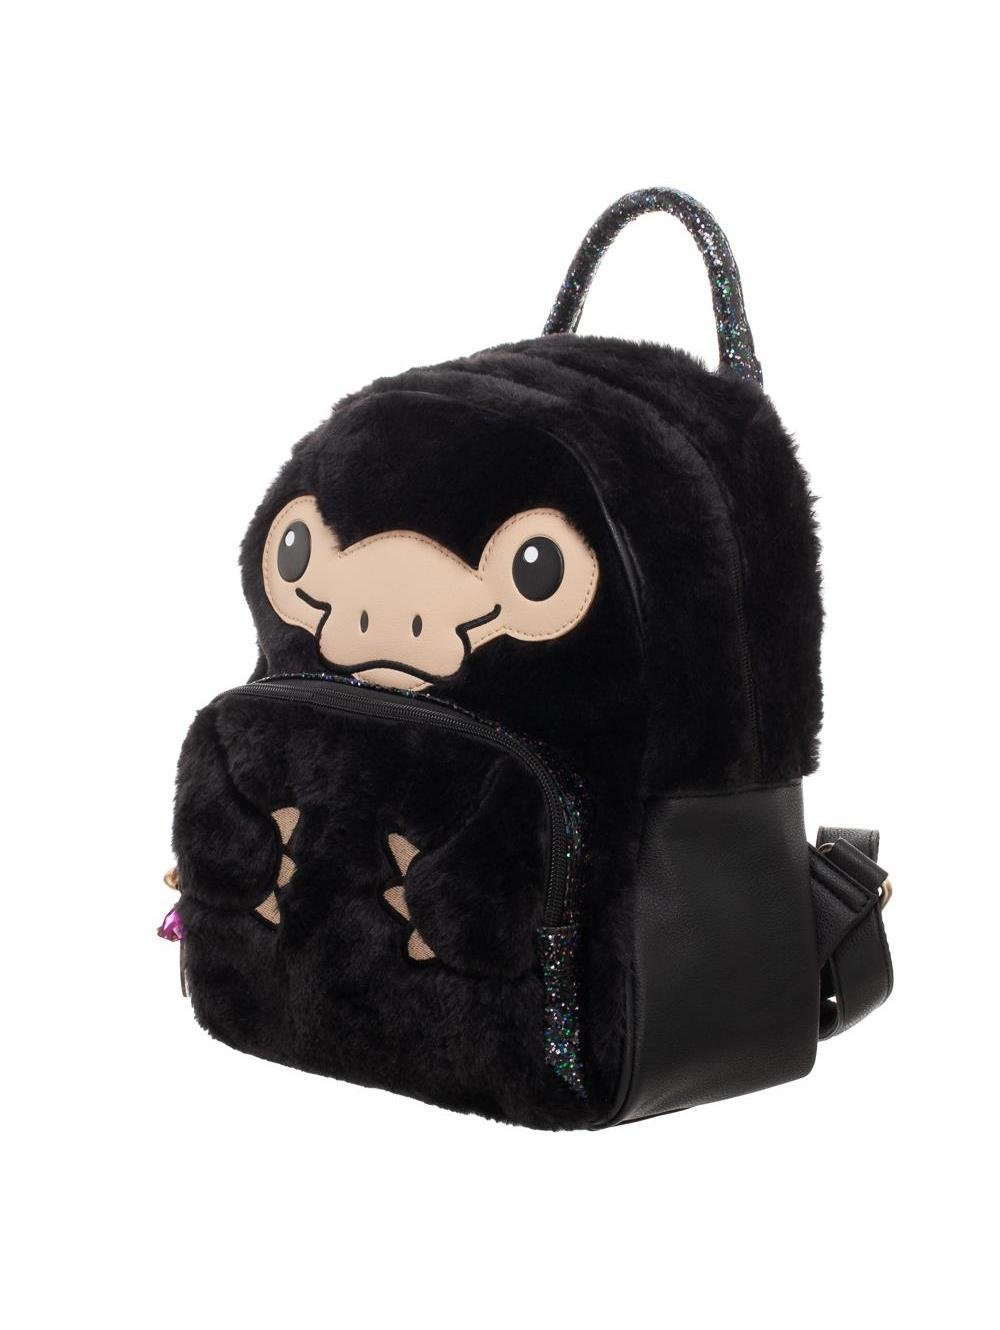 FANTASTIC BEASTS - Niffler Furry Backpack